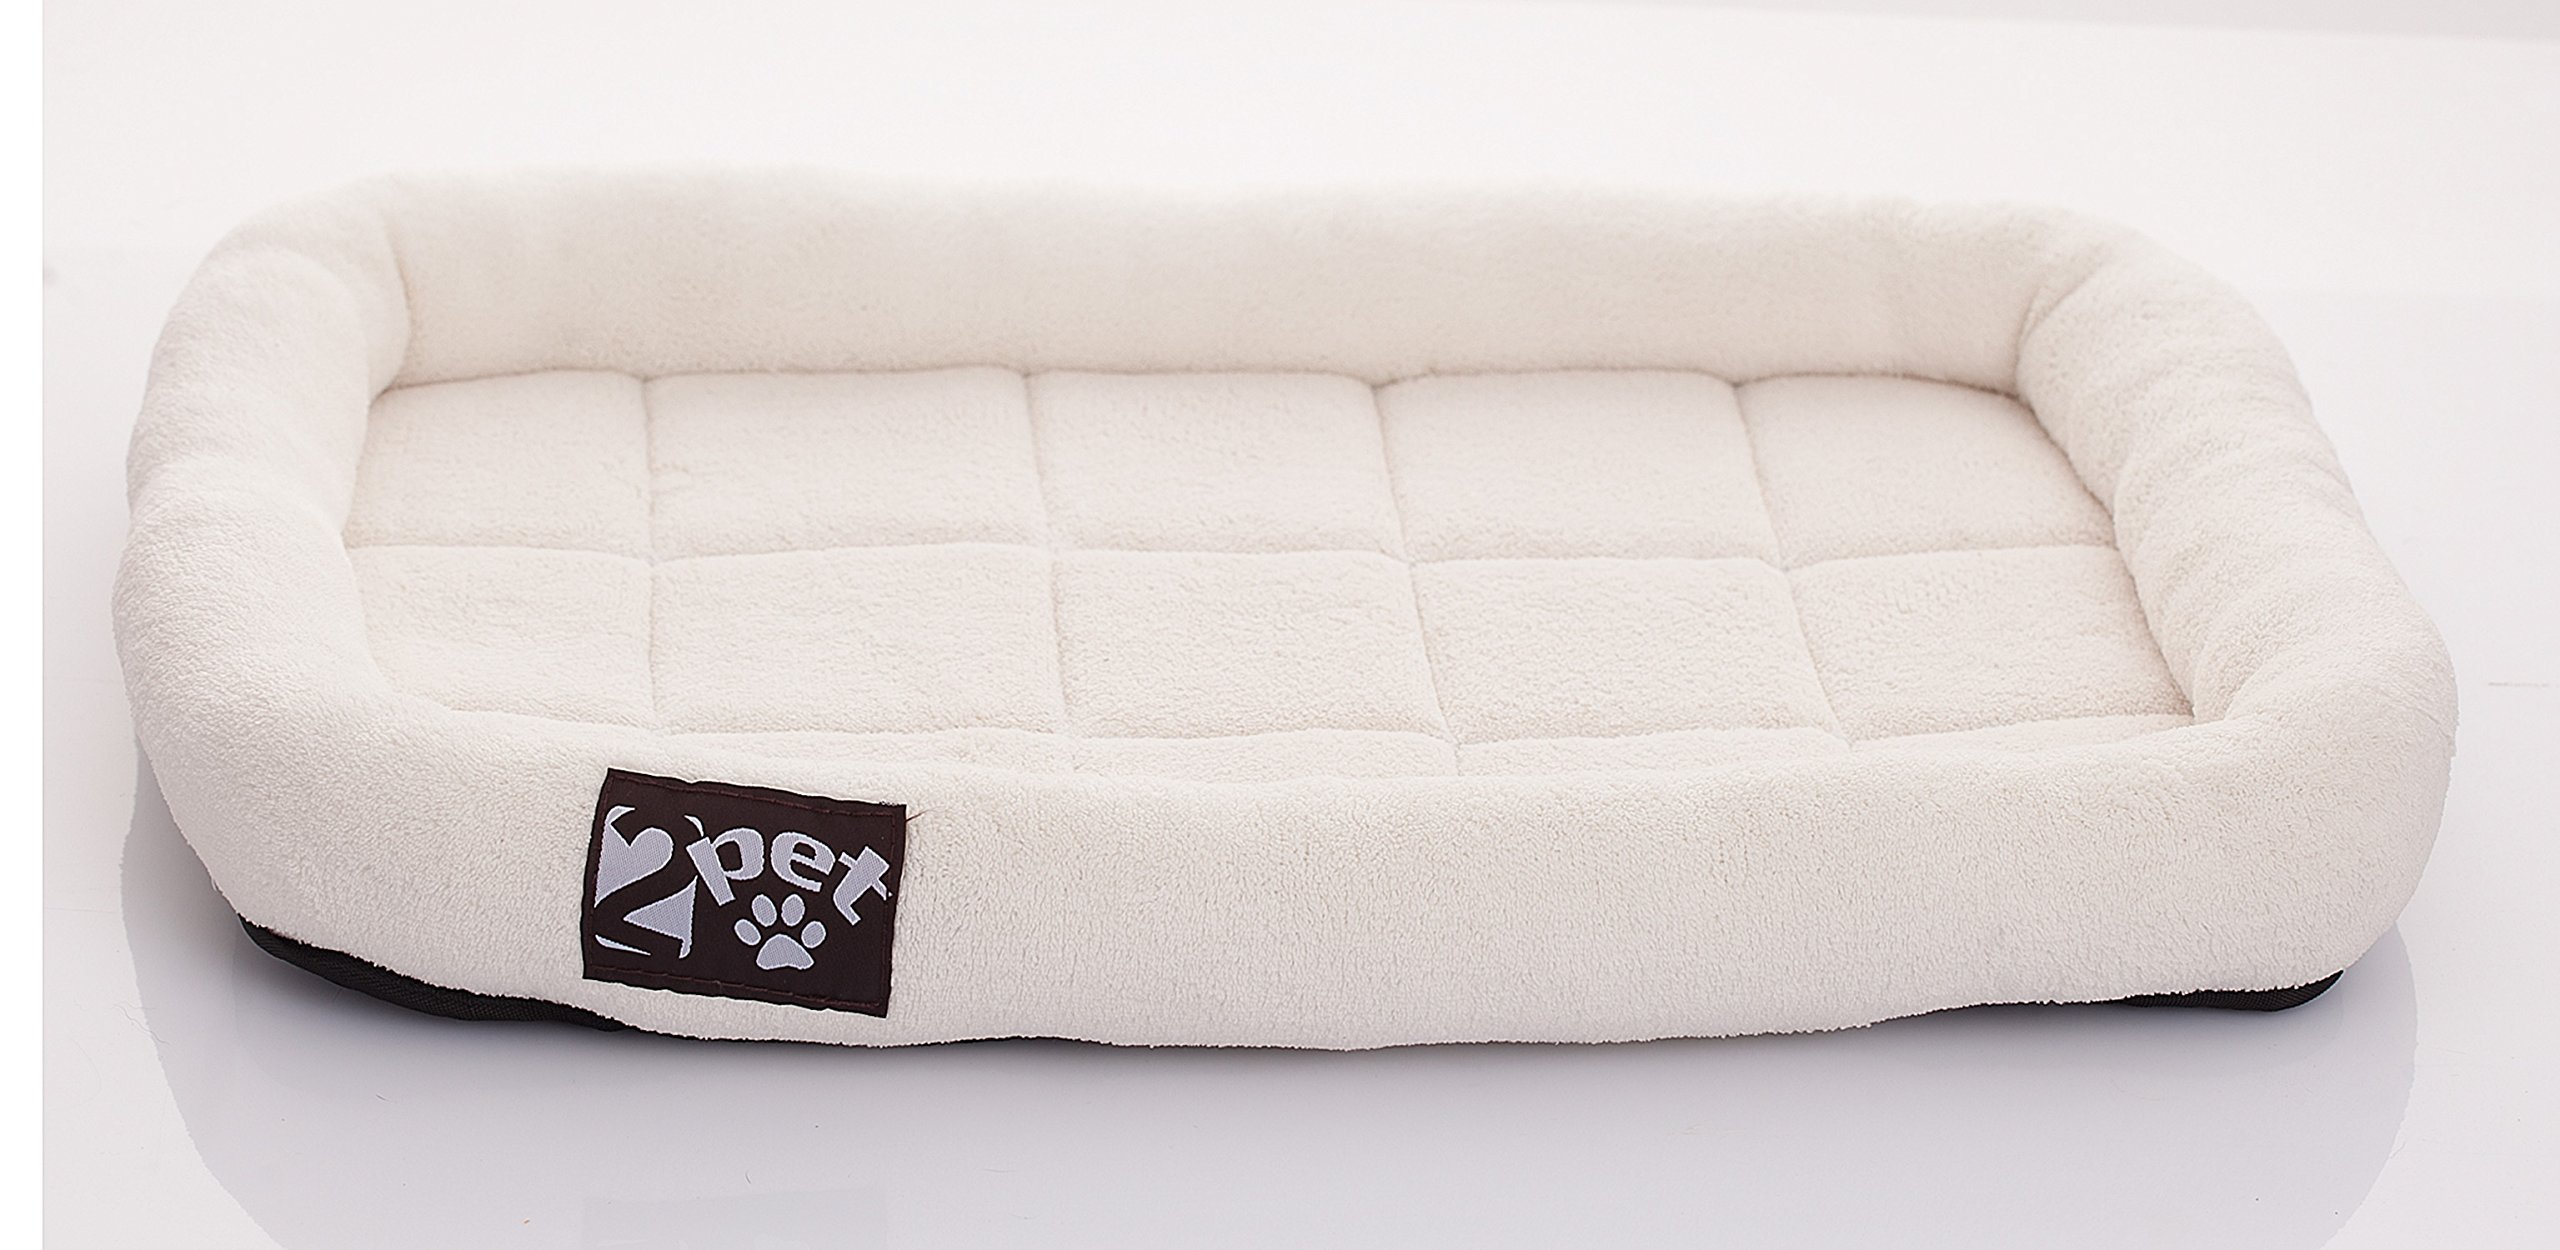 2PET Soft Padded Fleece Pet Bed by Cushy Bed All Season Crate Pad for Your Pet's Comfort Double Fleece Filling for Better Cushioning Waterproof, Easy to Clean Sturdy Border for Head Support 32''x22''